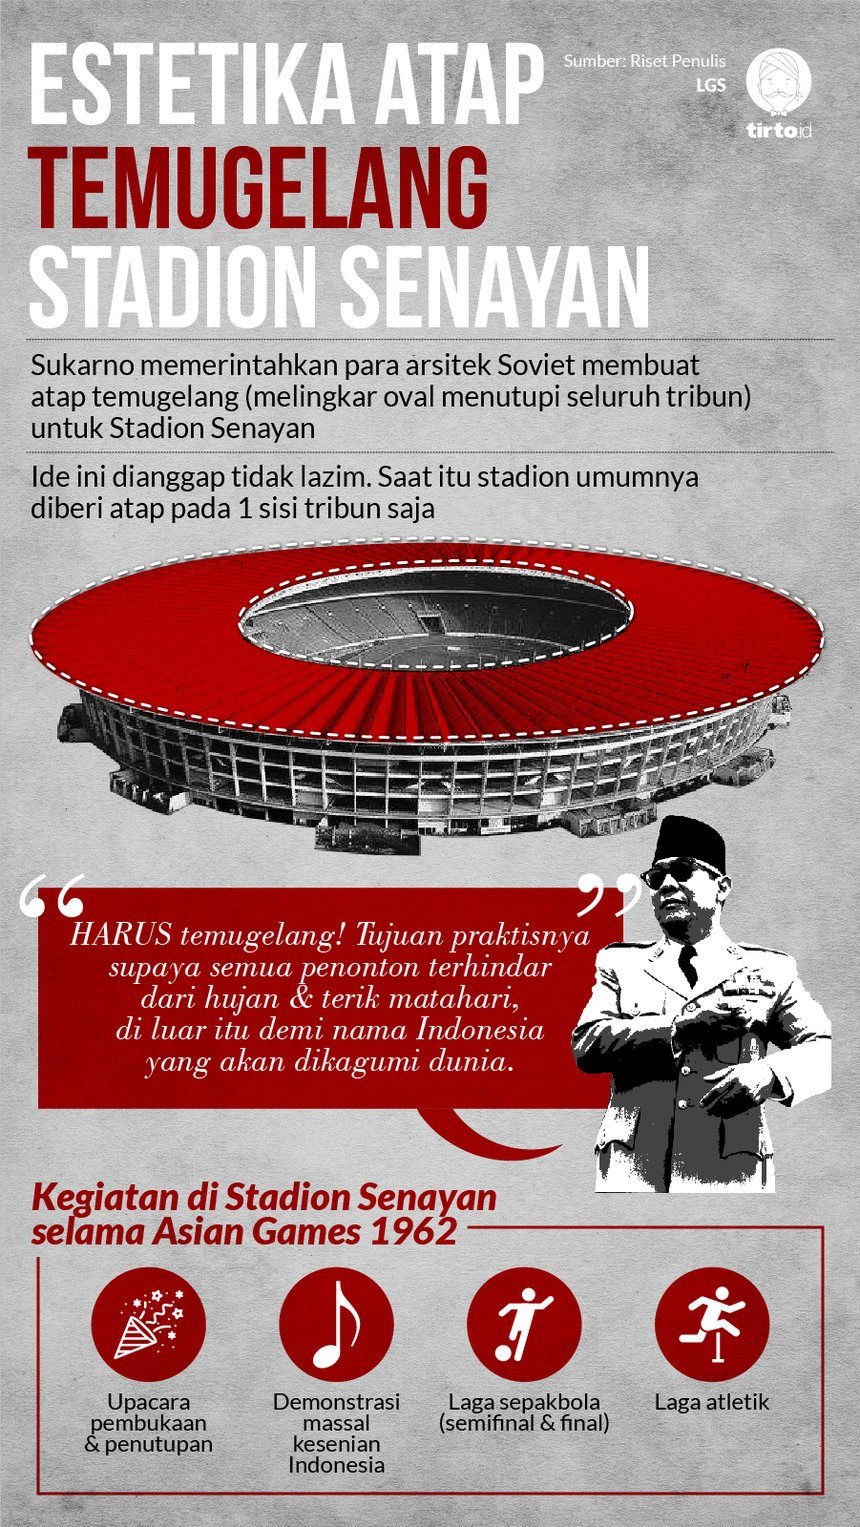 Infografik HL Indepth Asian Games 1962